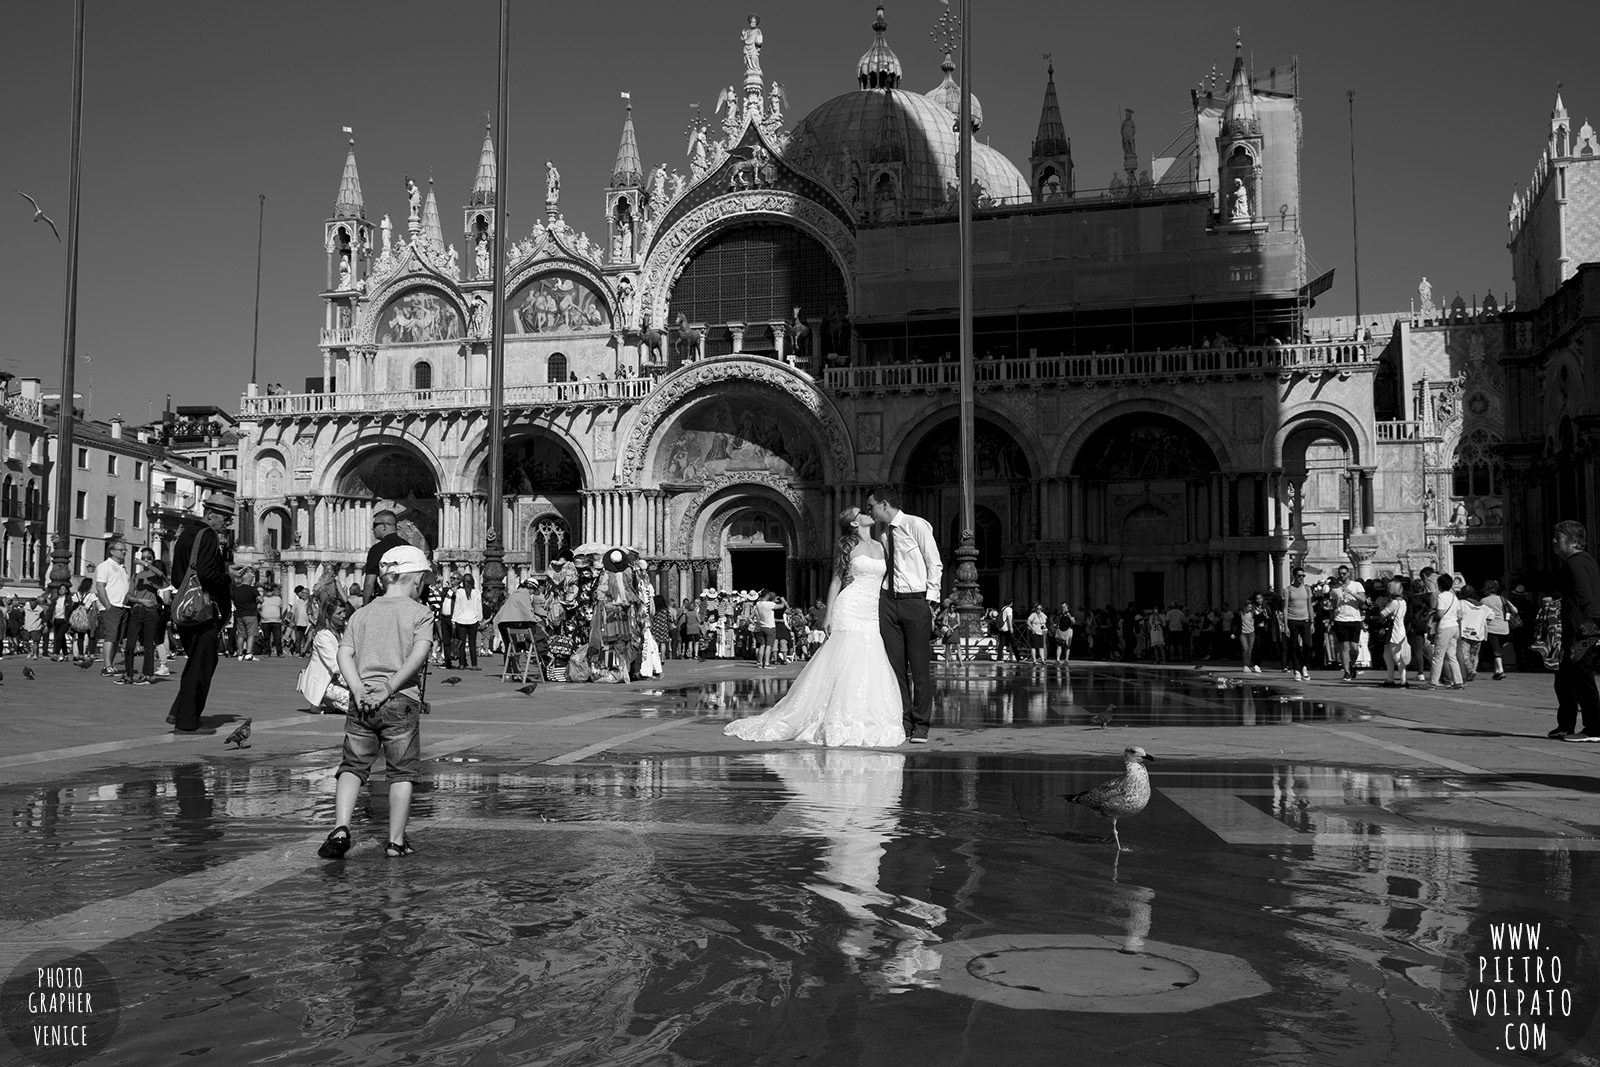 photographer-in-venice-for-wedding-honeymoon-photography-session-and-walking-tour-for-couple-20160922_03